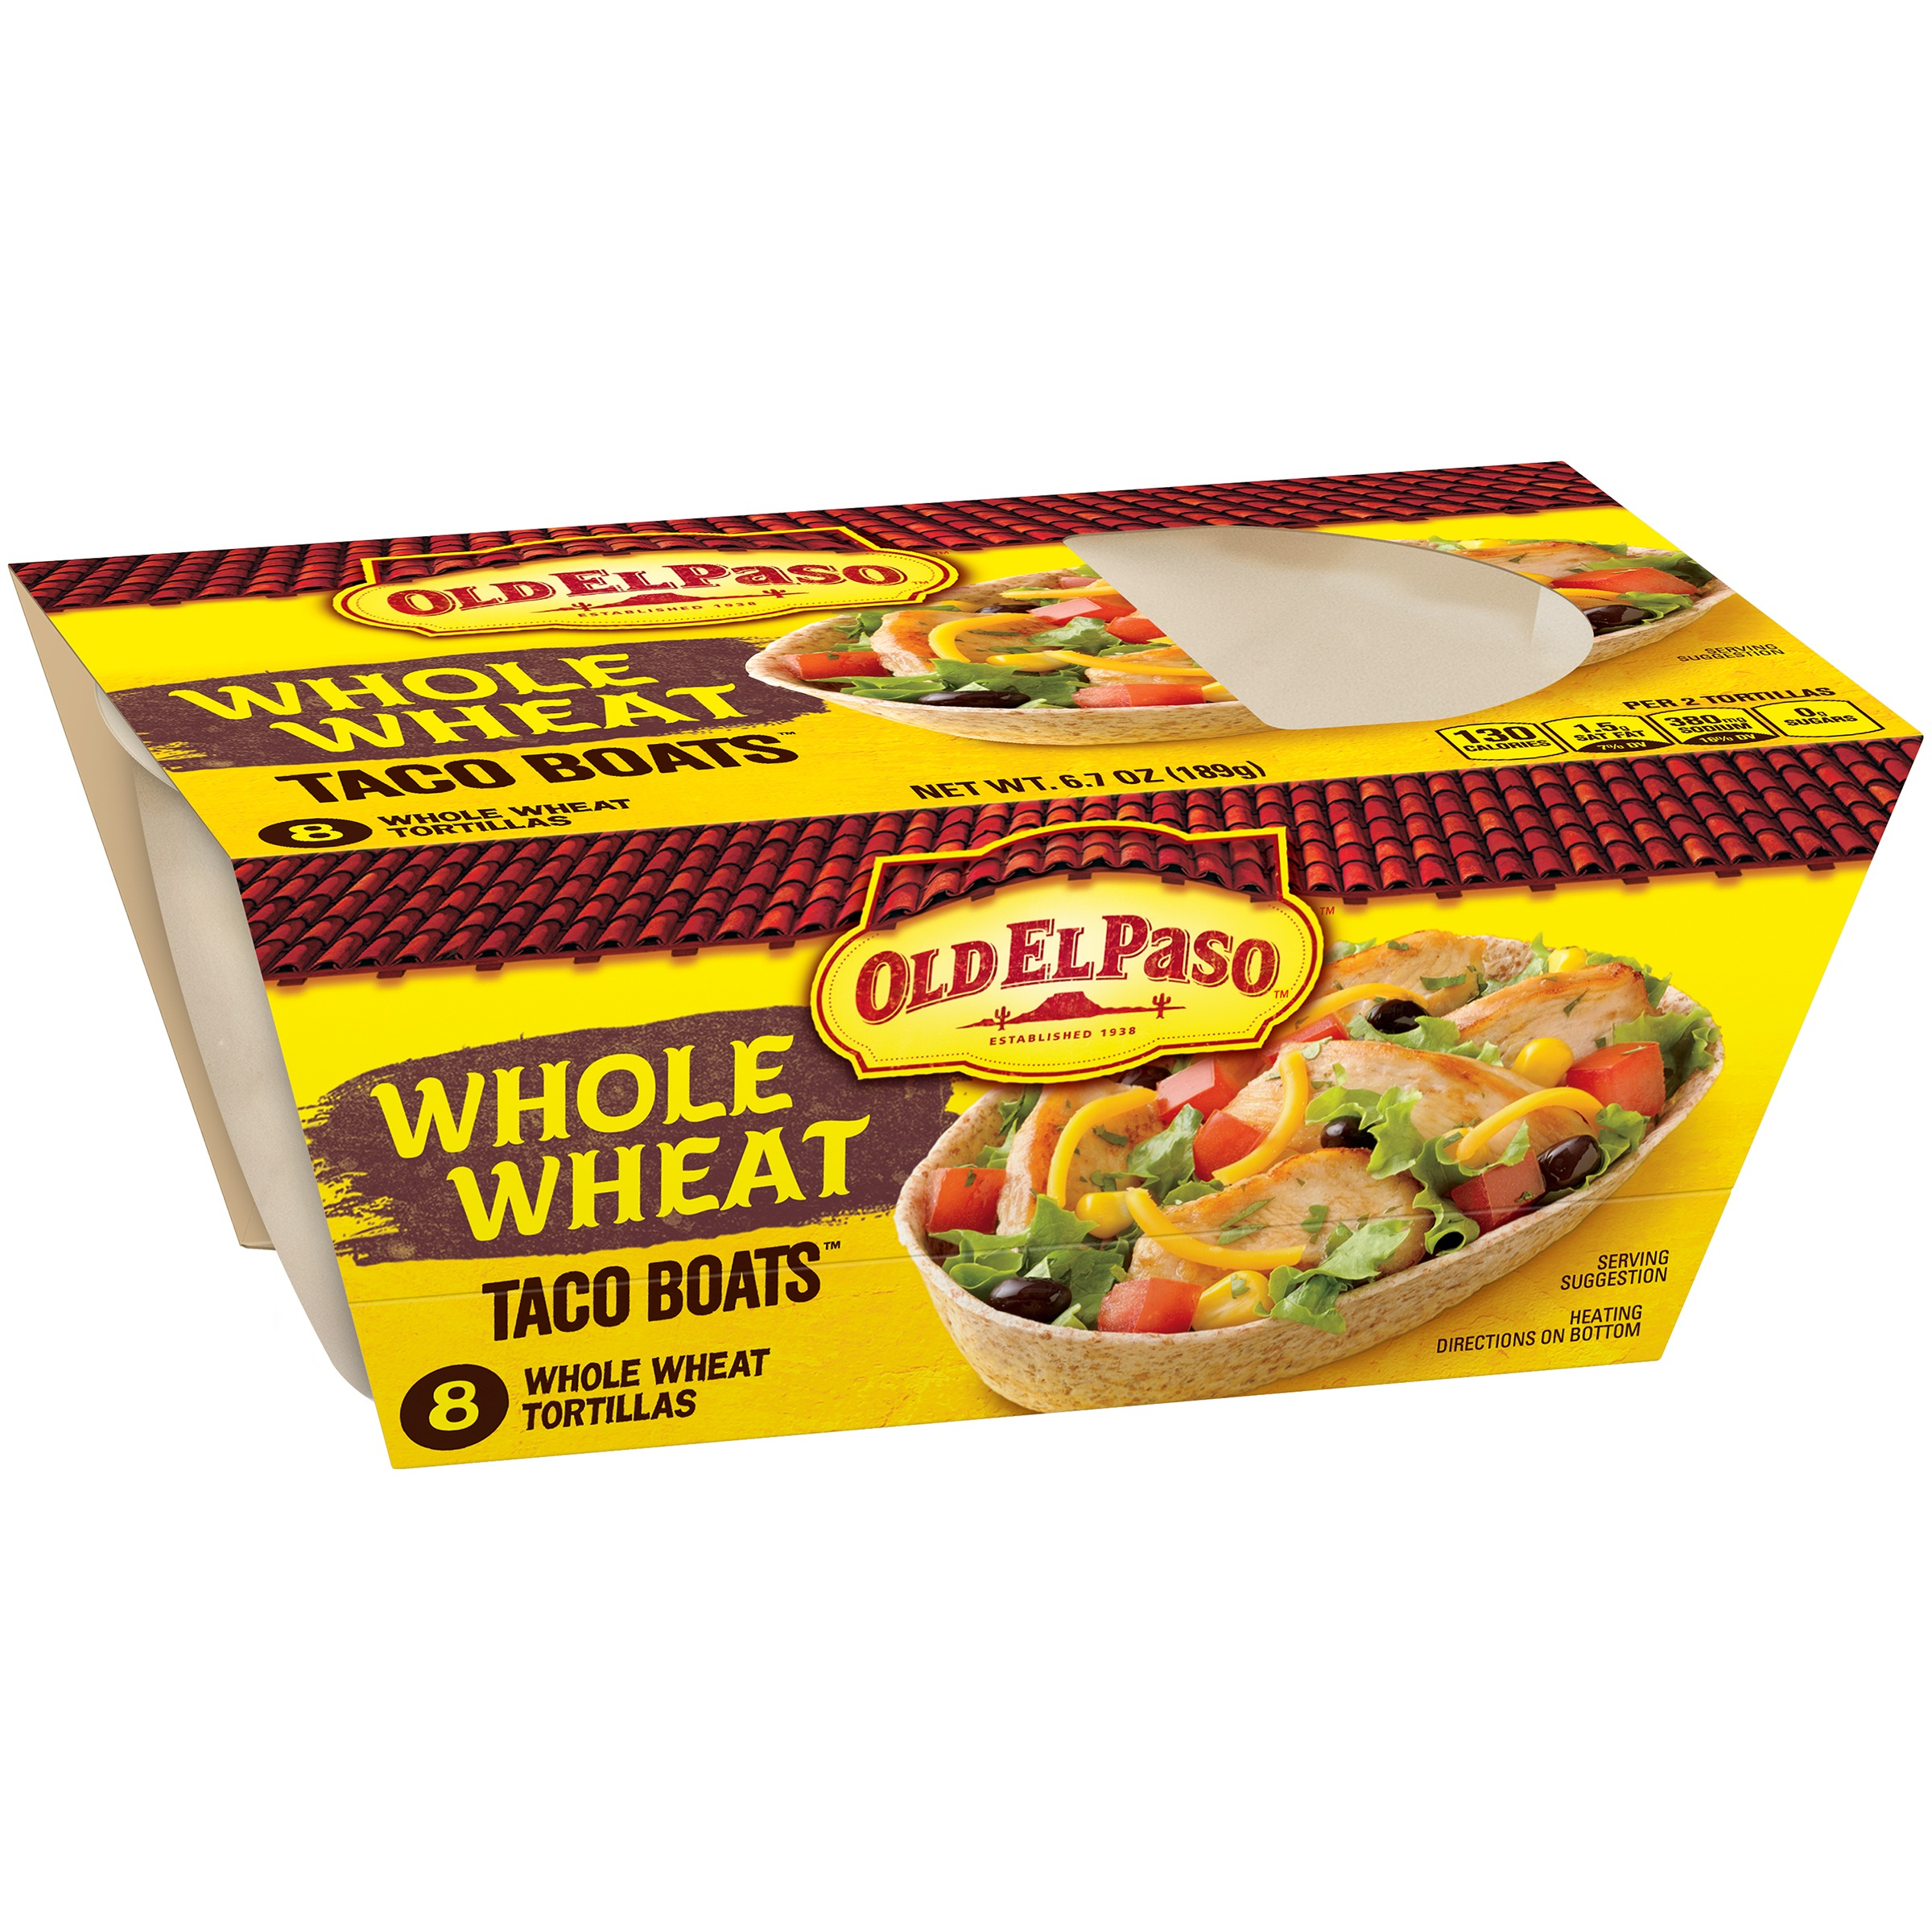 Old El Paso Taco Boats Whole Wheat Tortillas 8 ct Pack